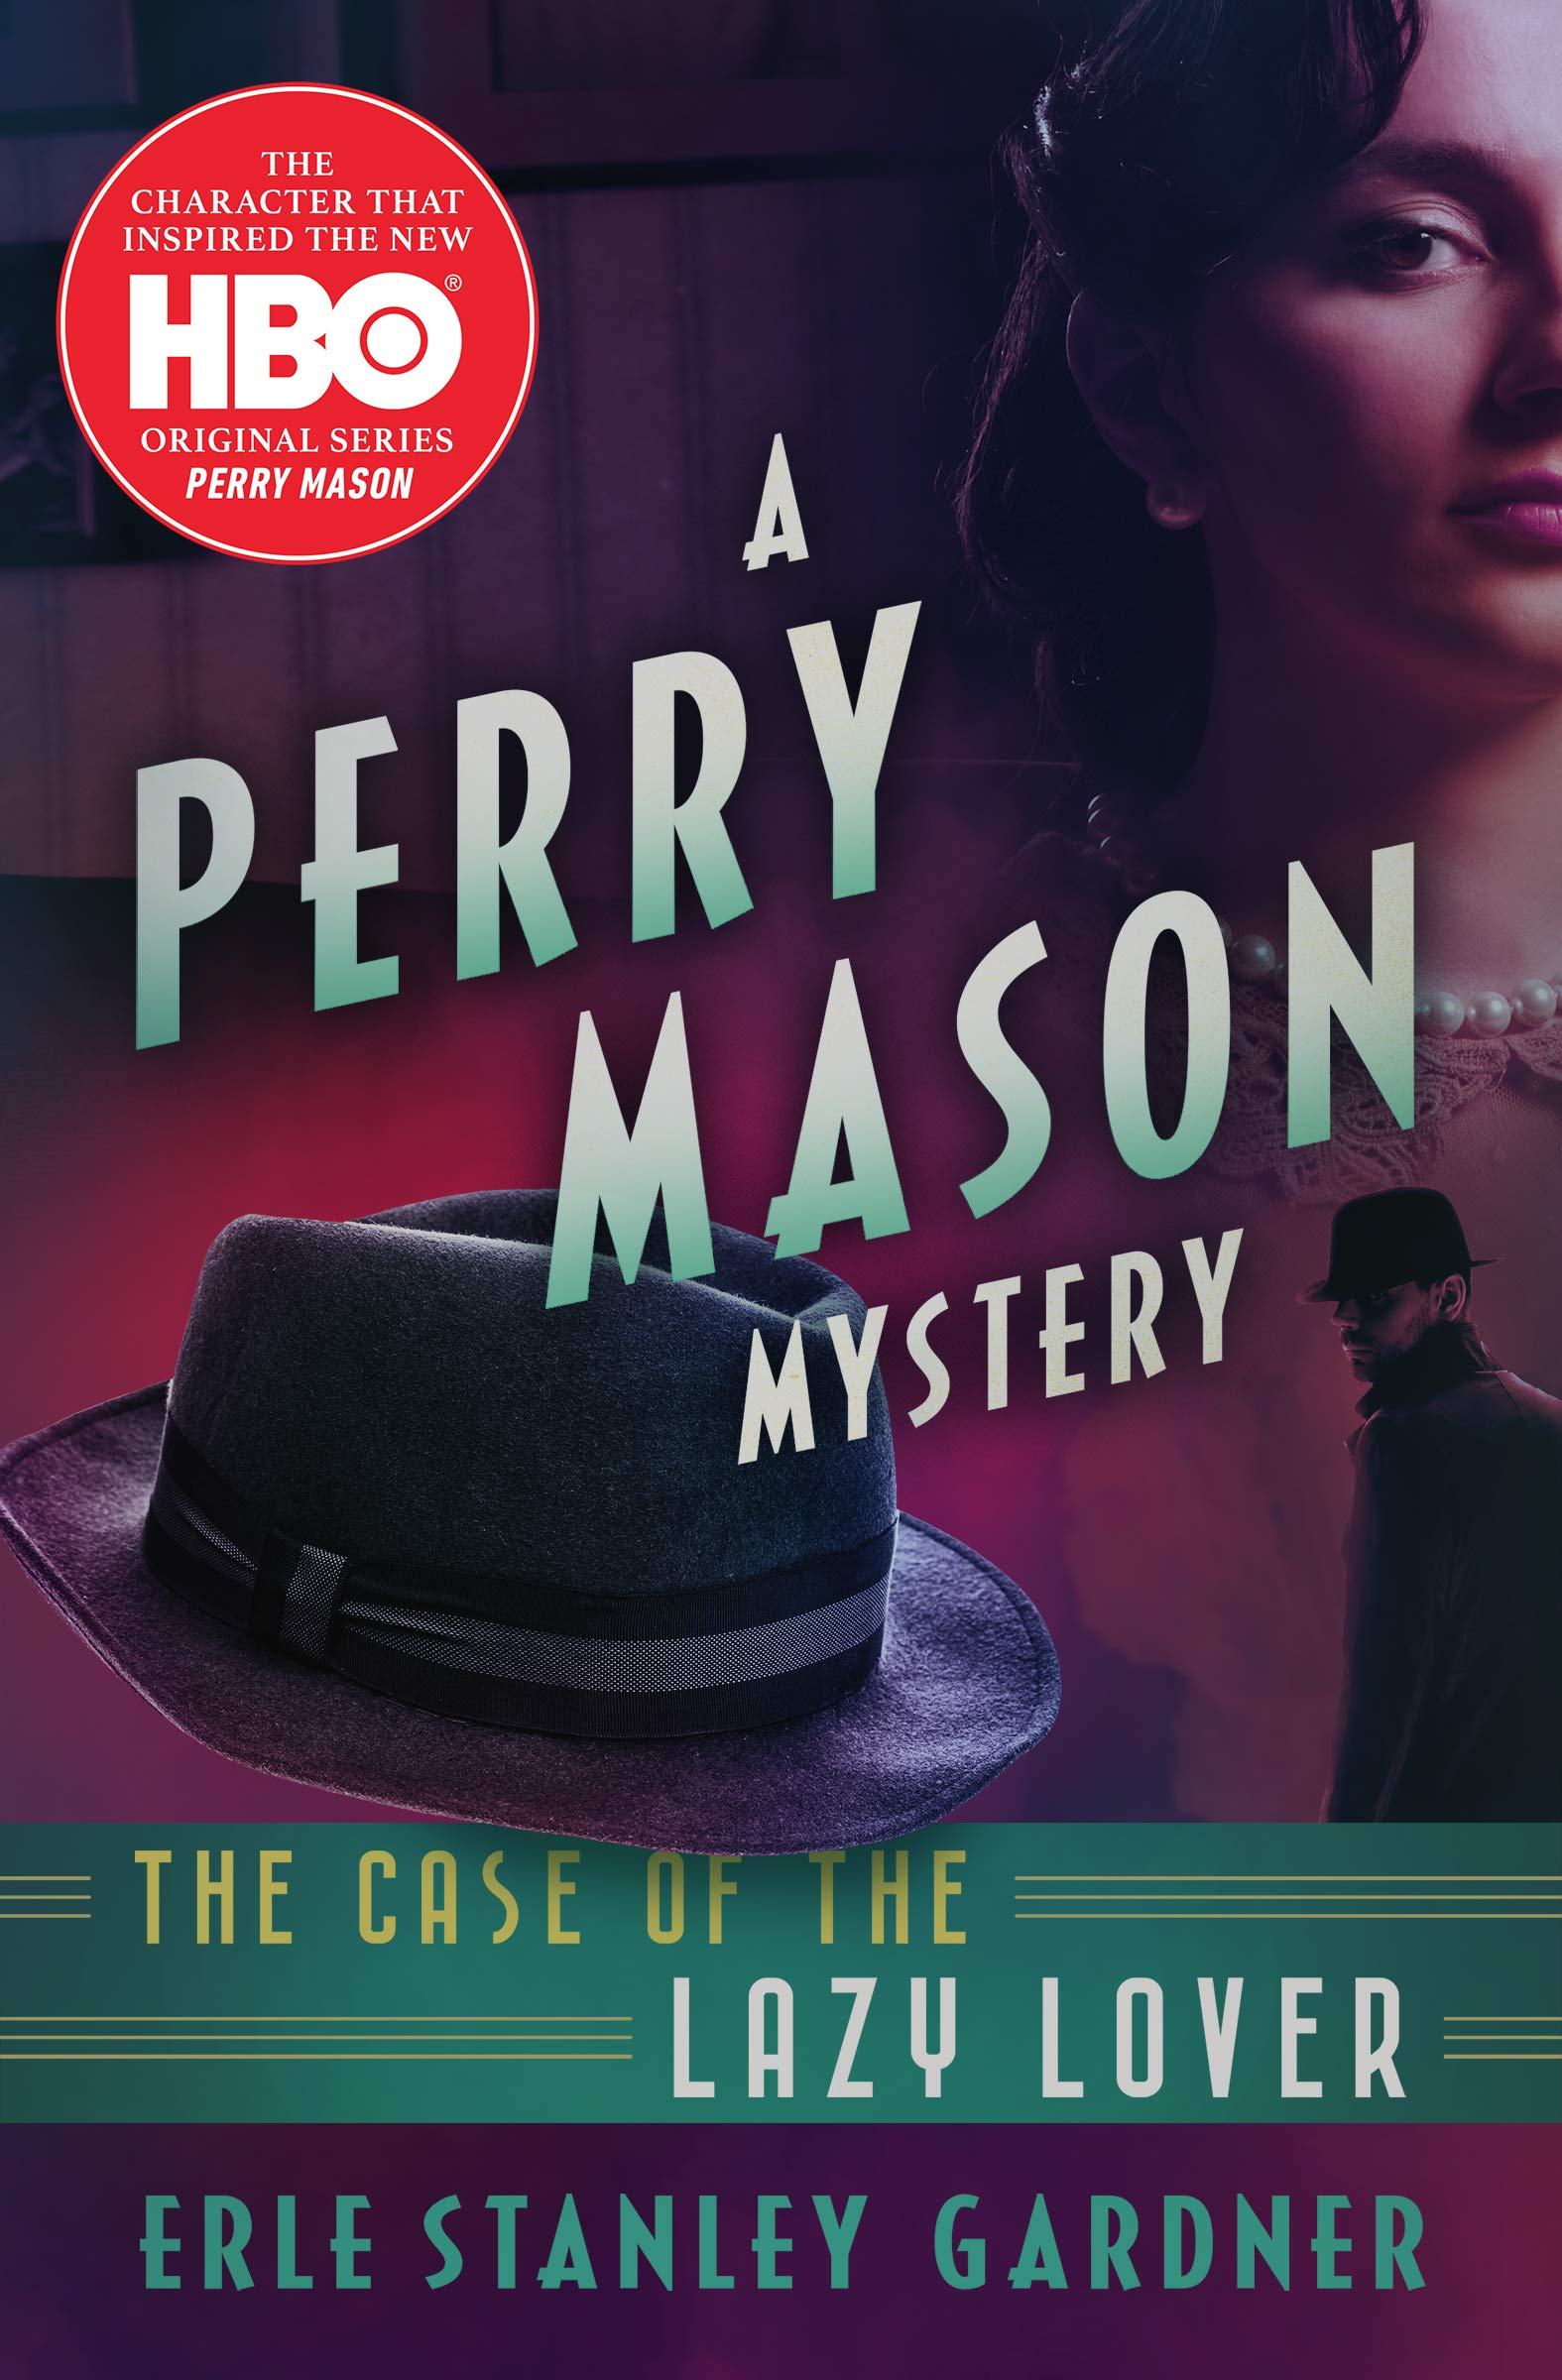 The Case of the Lazy Lover (The Perry Mason Mysteries Book 1)